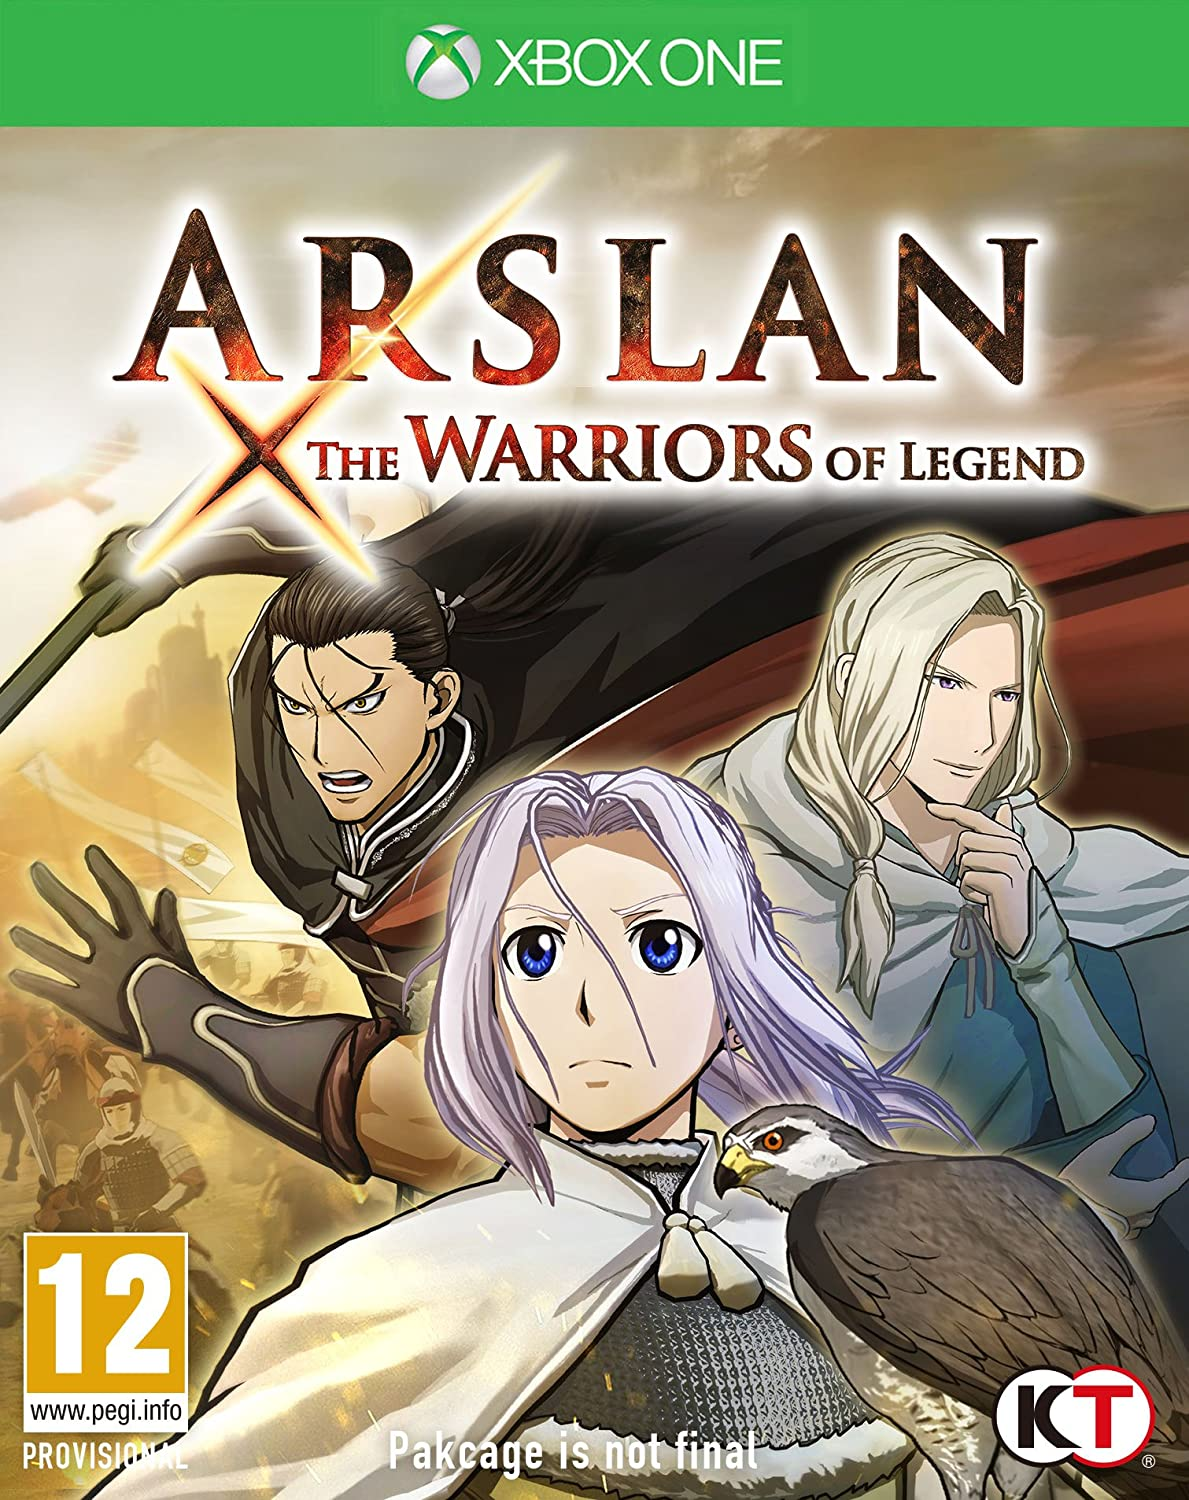 Arslan: The Warriors Of Legend: Amazon.es: Videojuegos